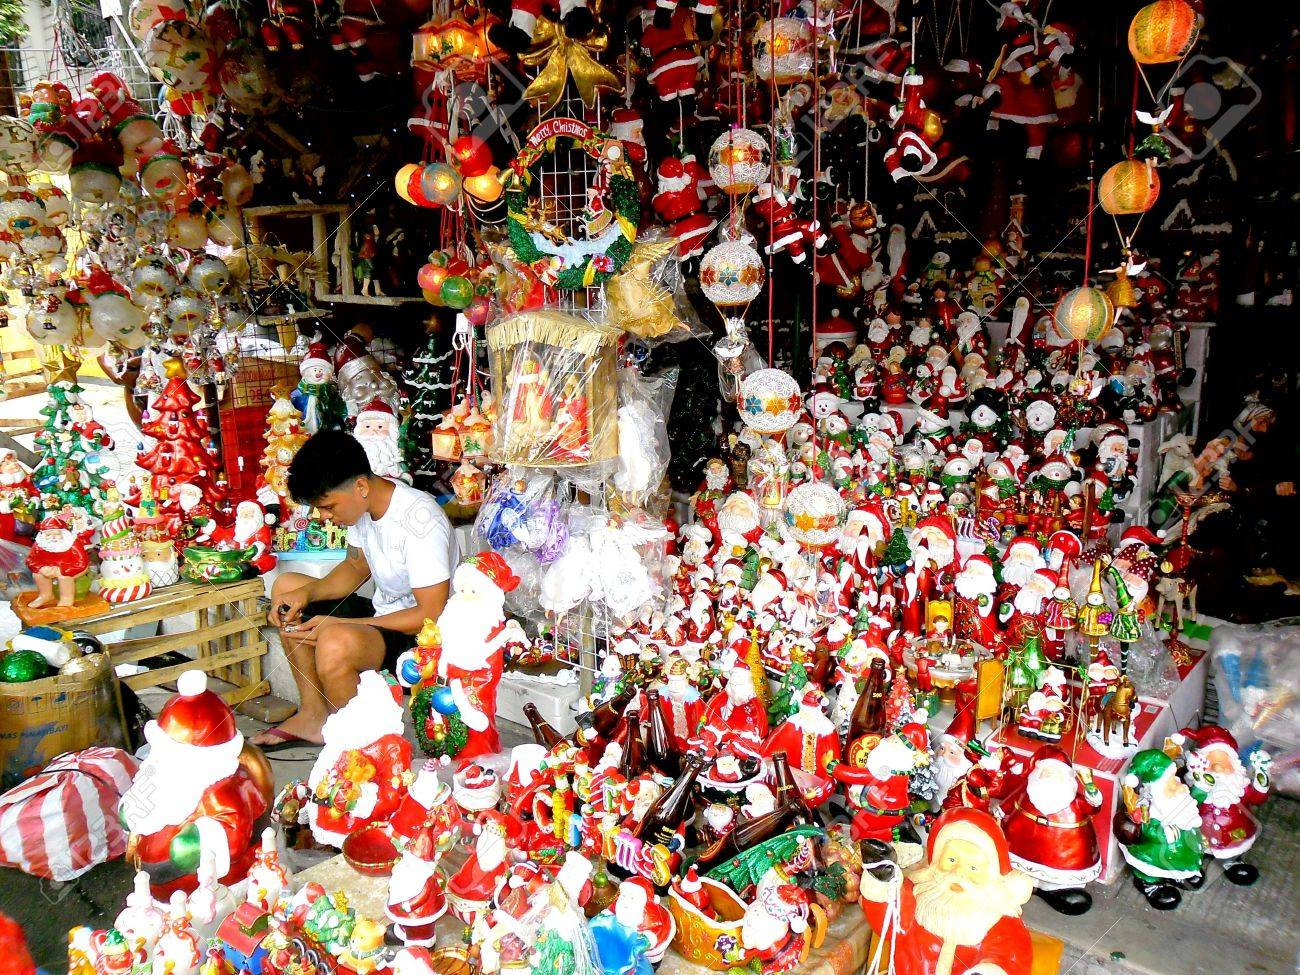 stock photo store in dapitan arcade in manila philippines selling christmas decorations